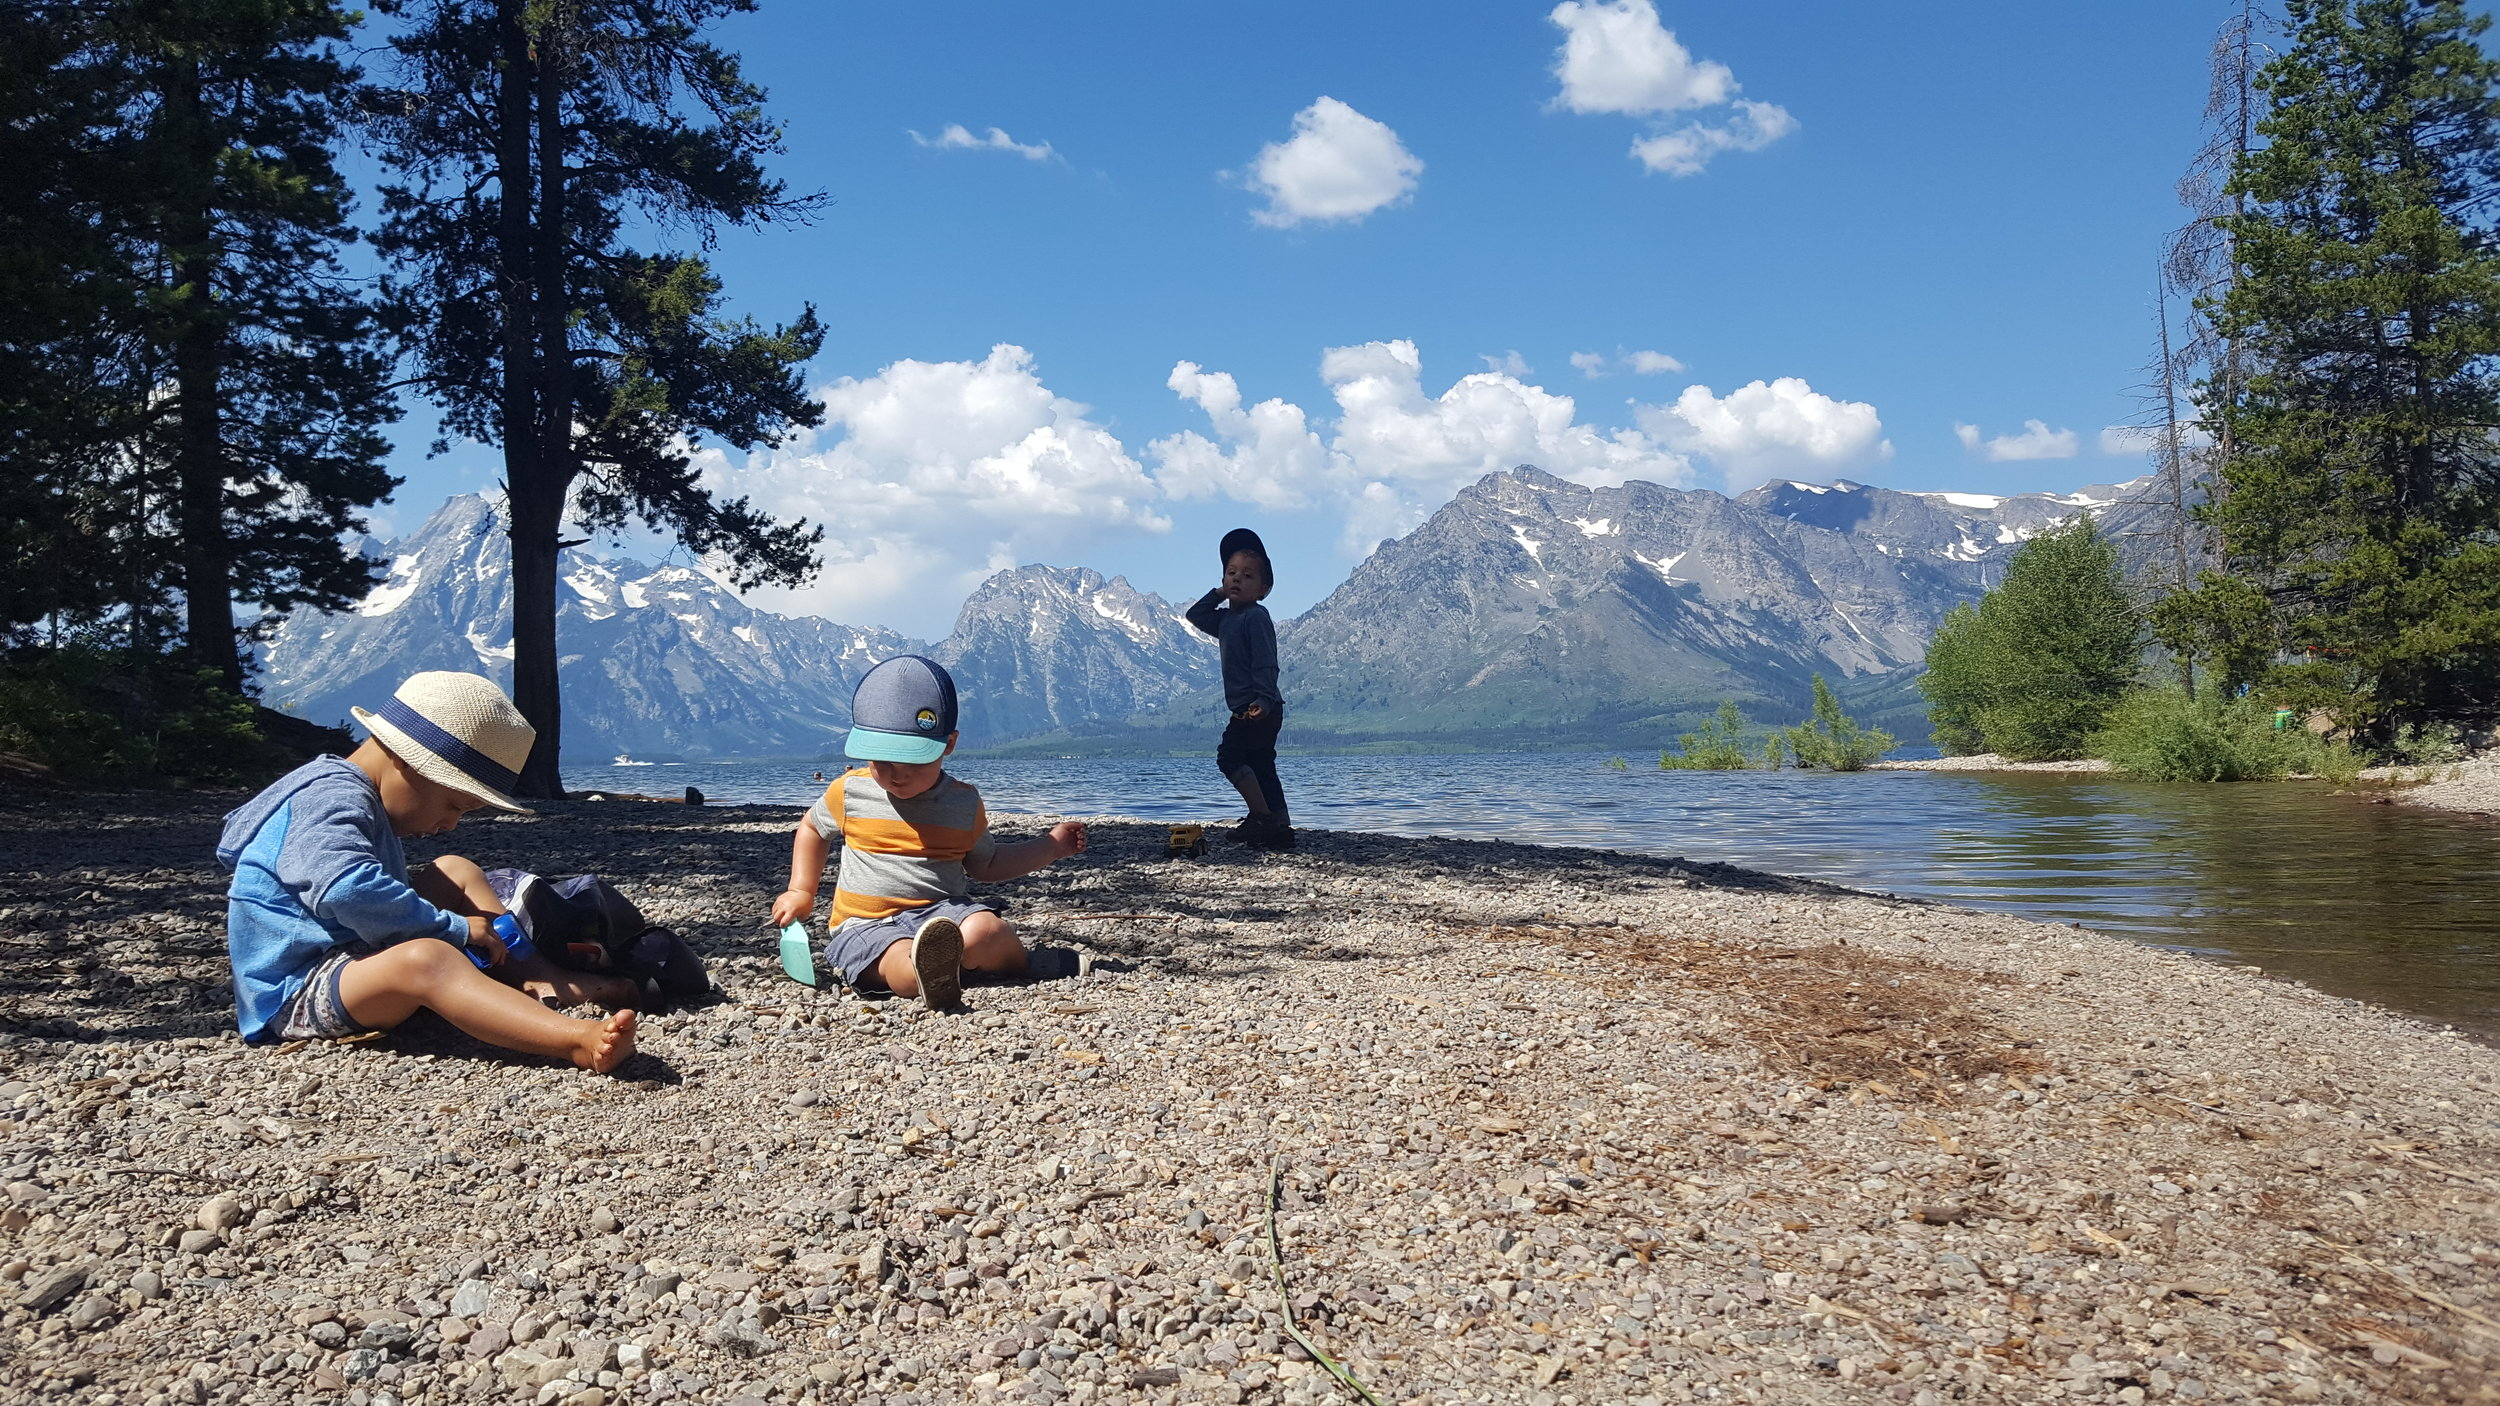 Just like the good ol' days, back at the beach with Leo. Colter Bay Campground.